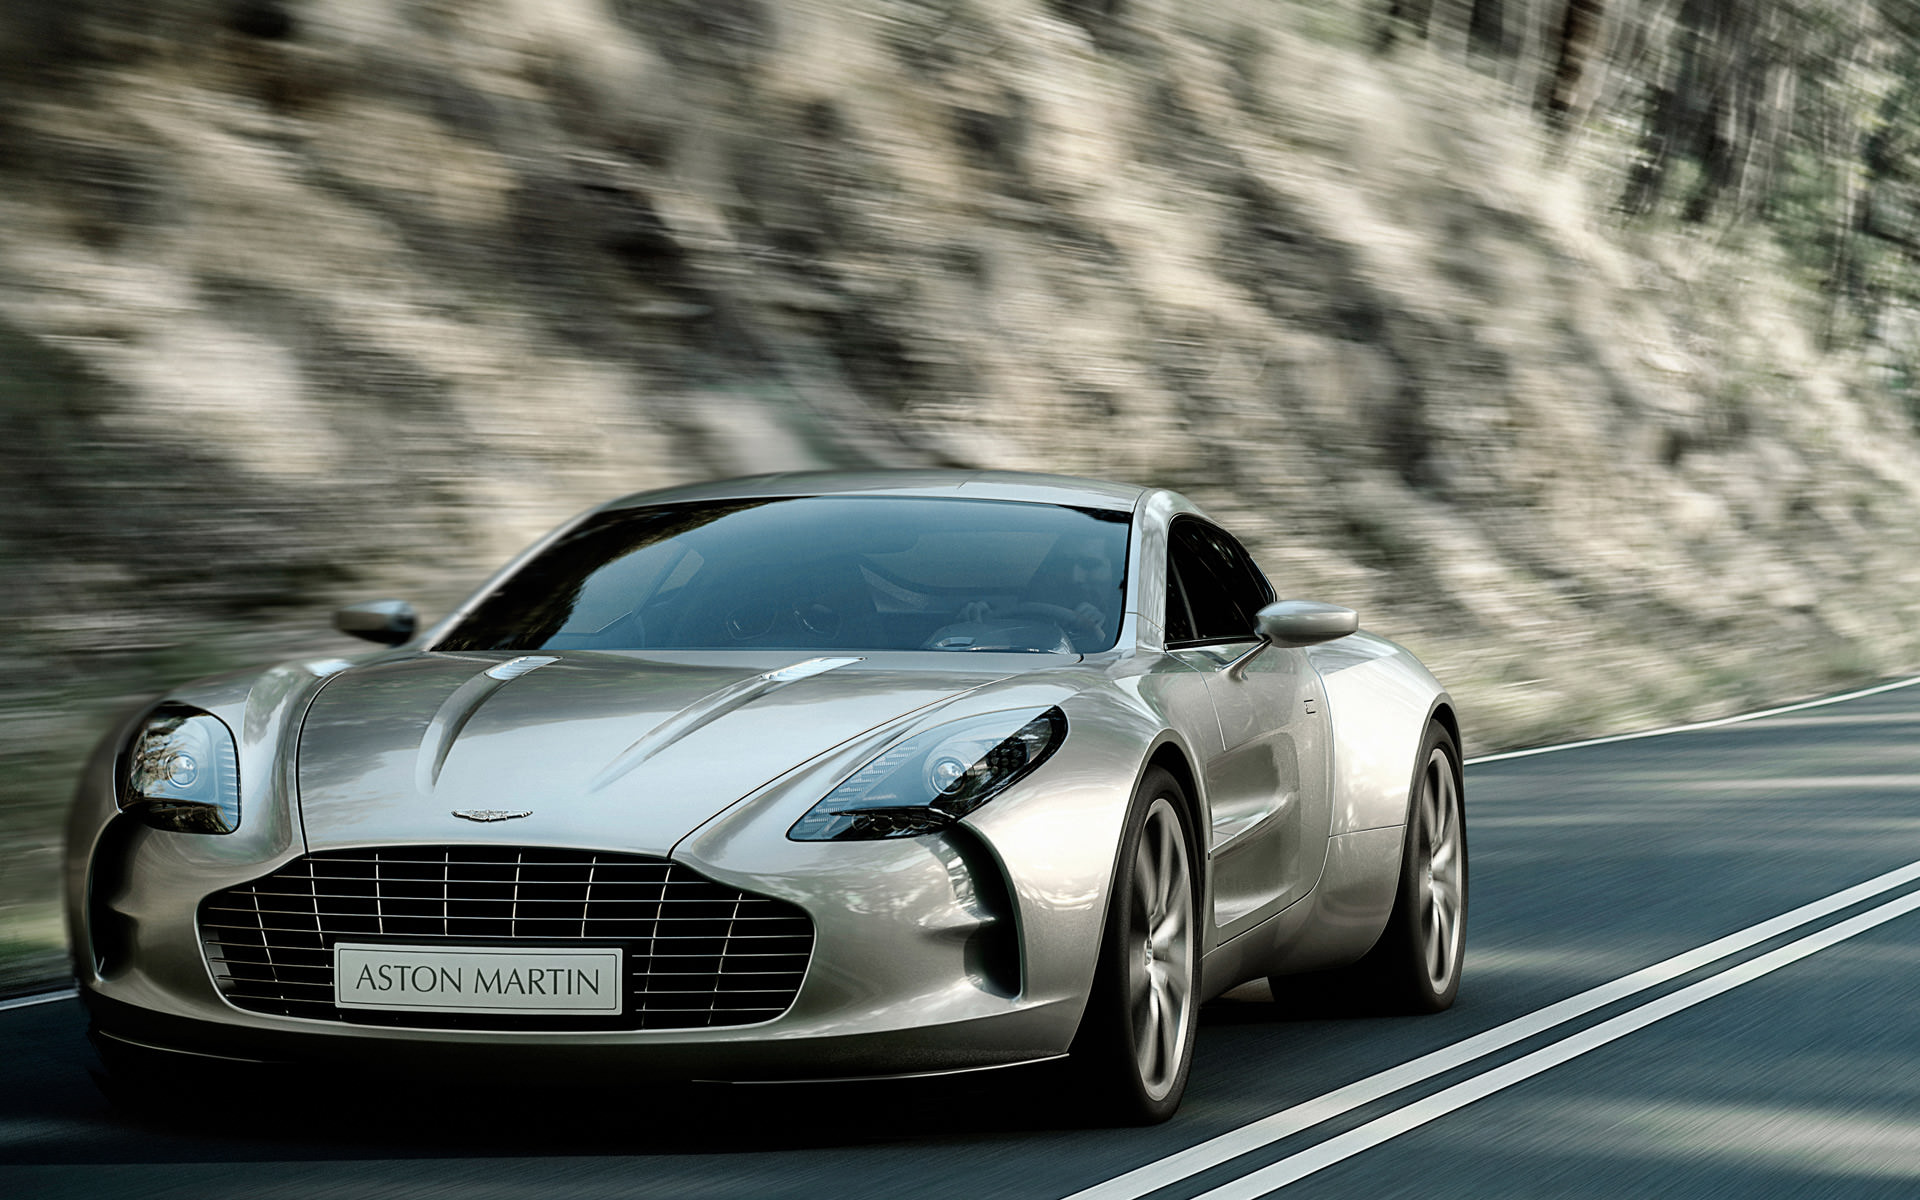 Aston Martin Front View Background